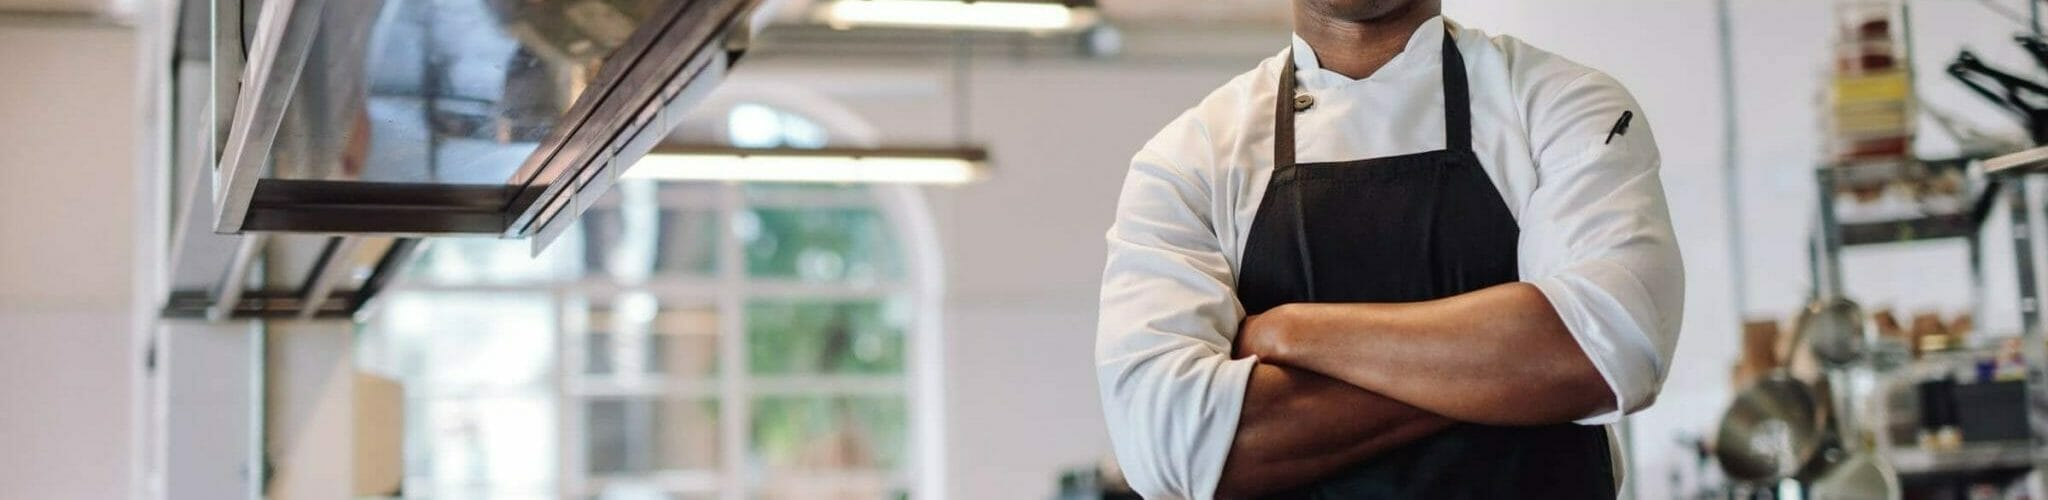 Chef in his kitchen with crossed arms and smiling